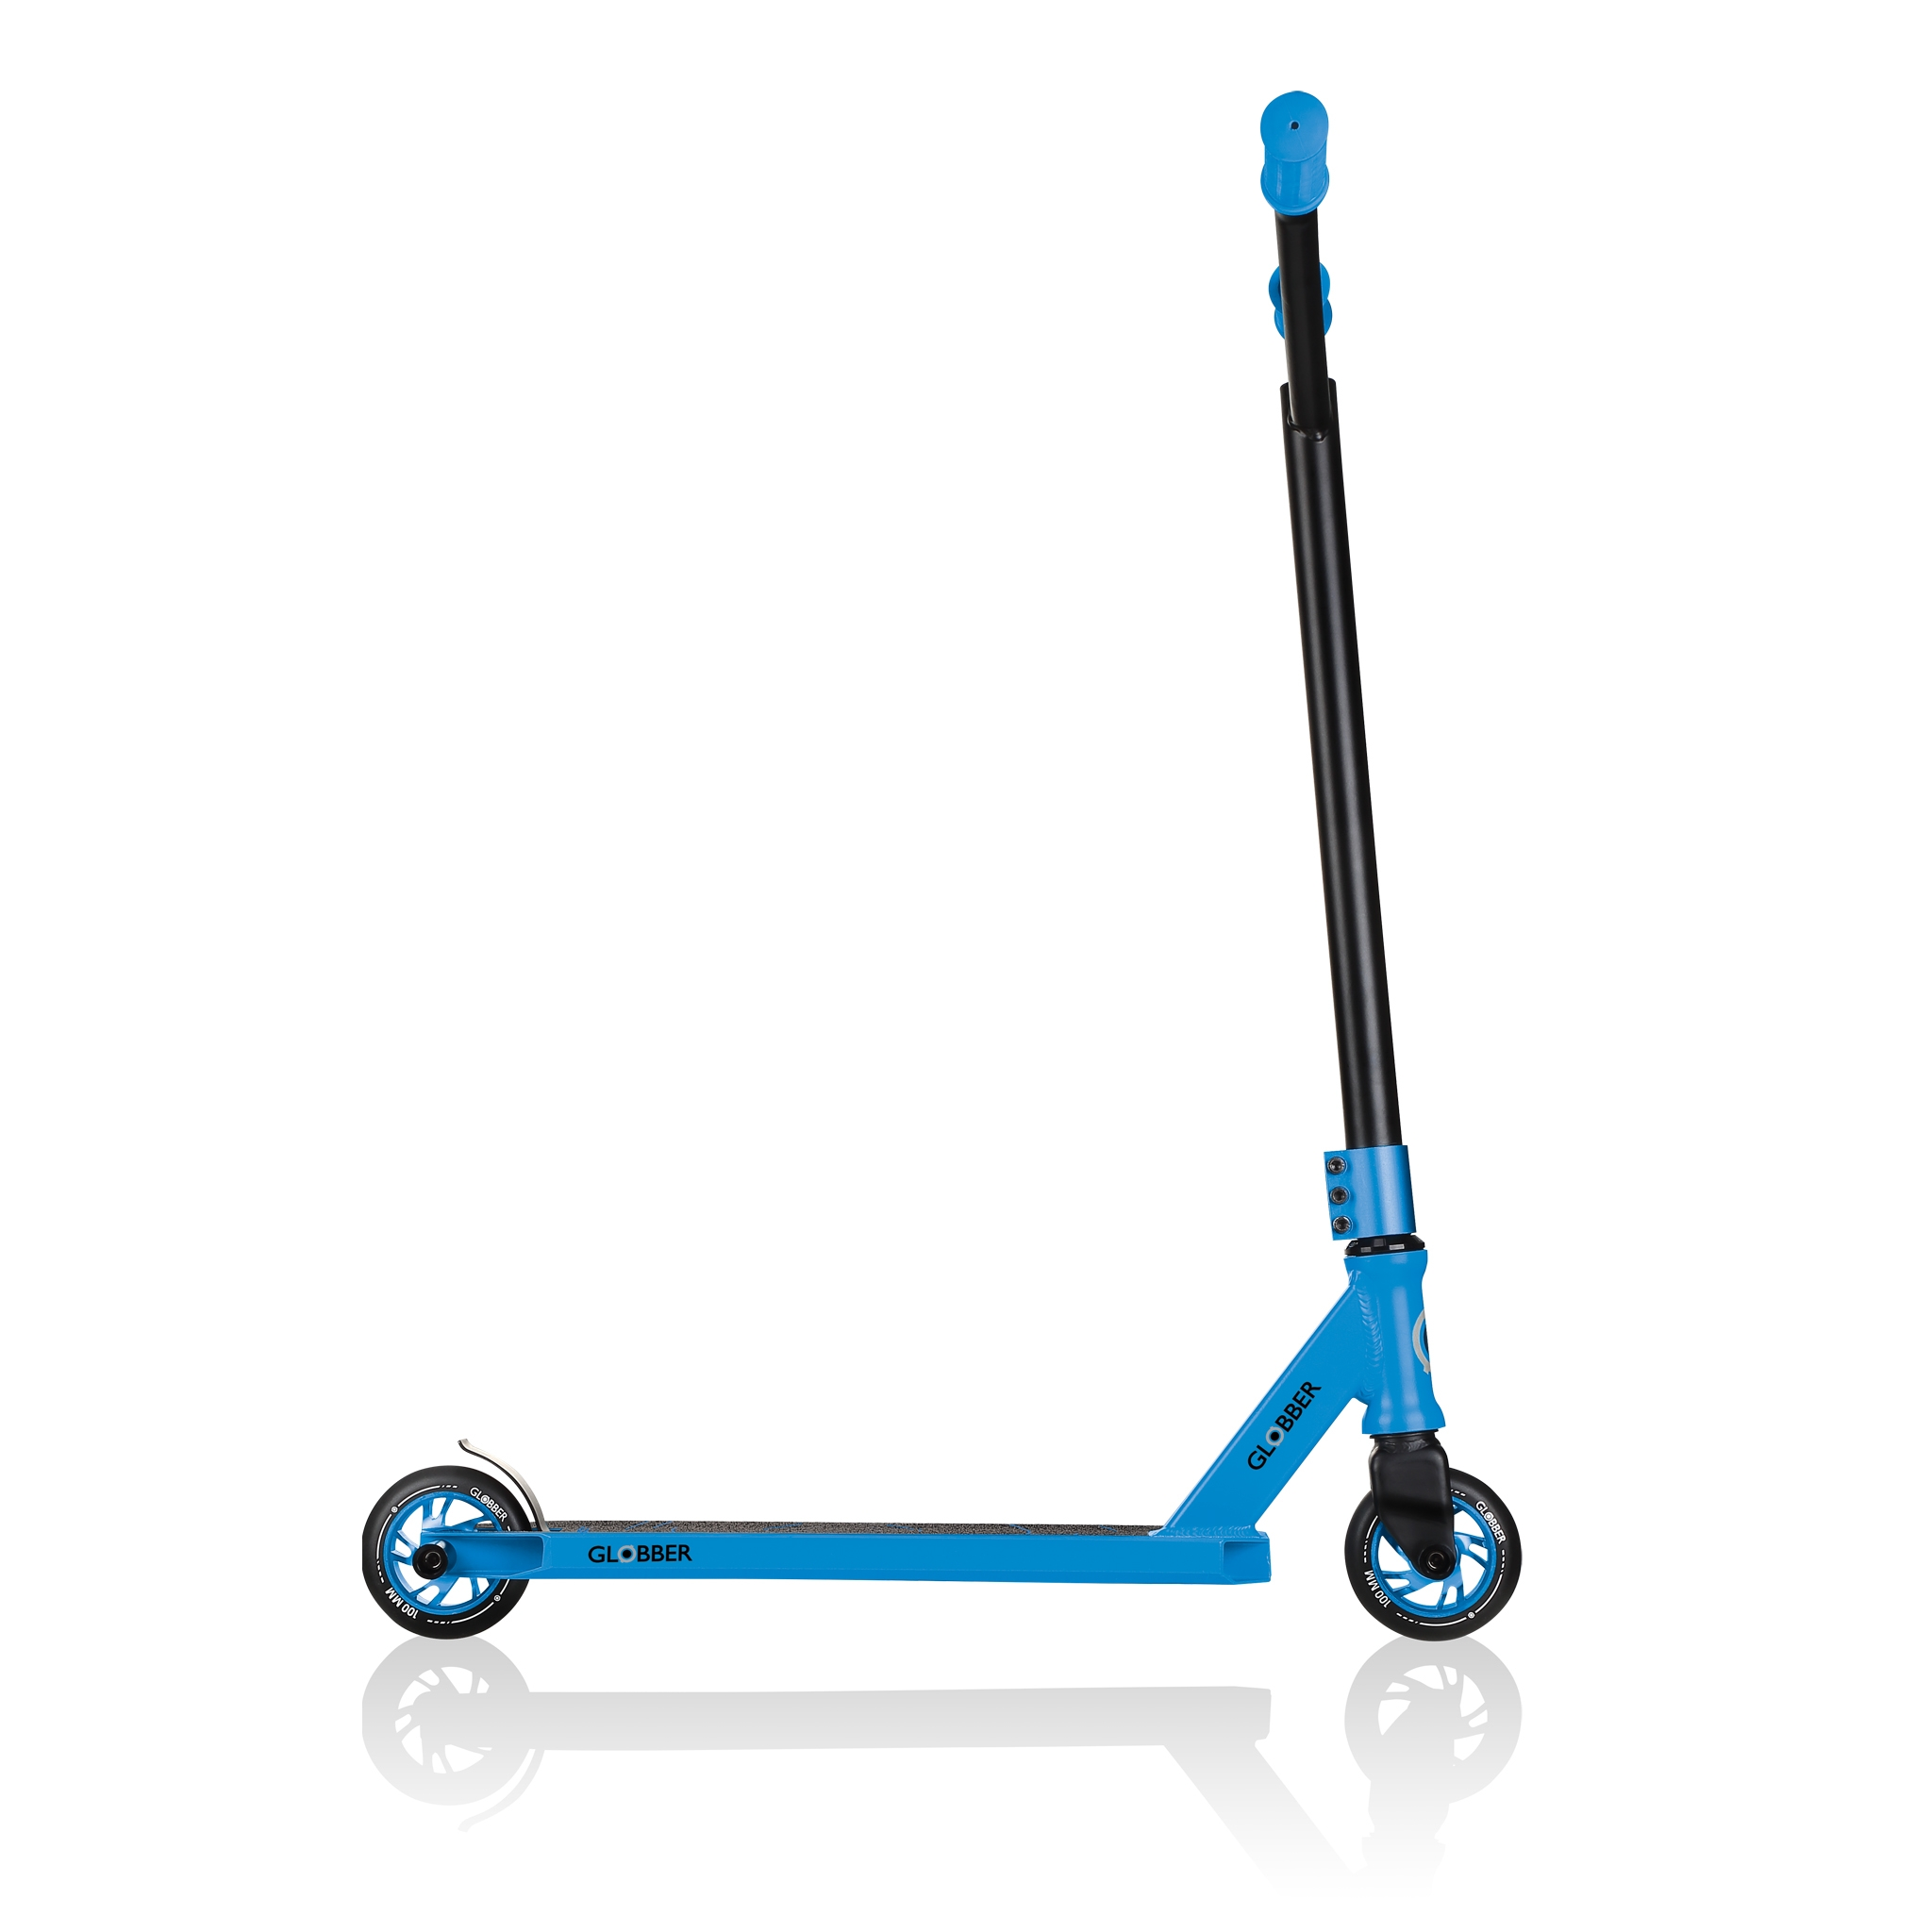 stunt scooter for kids and teens aged 8+ with pegs - Globber GS 540 3